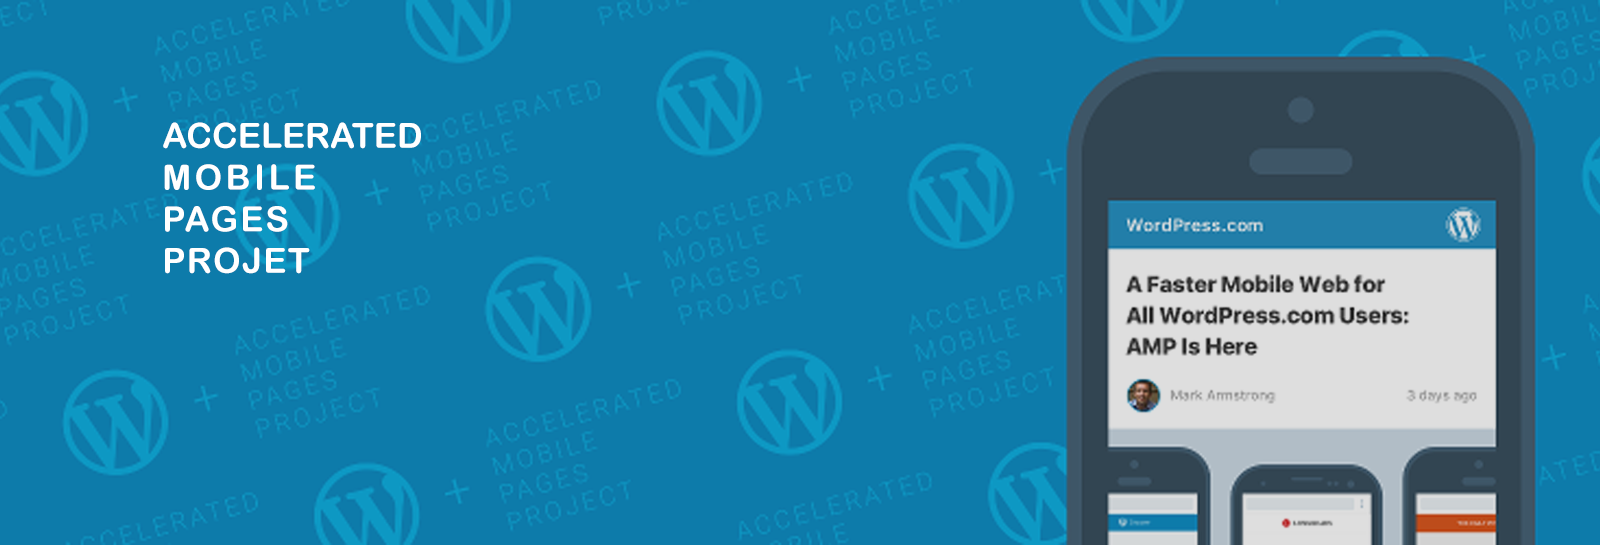 How to Invoke AMP (Accelerated Mobile Pages) in WordPress? 4  General